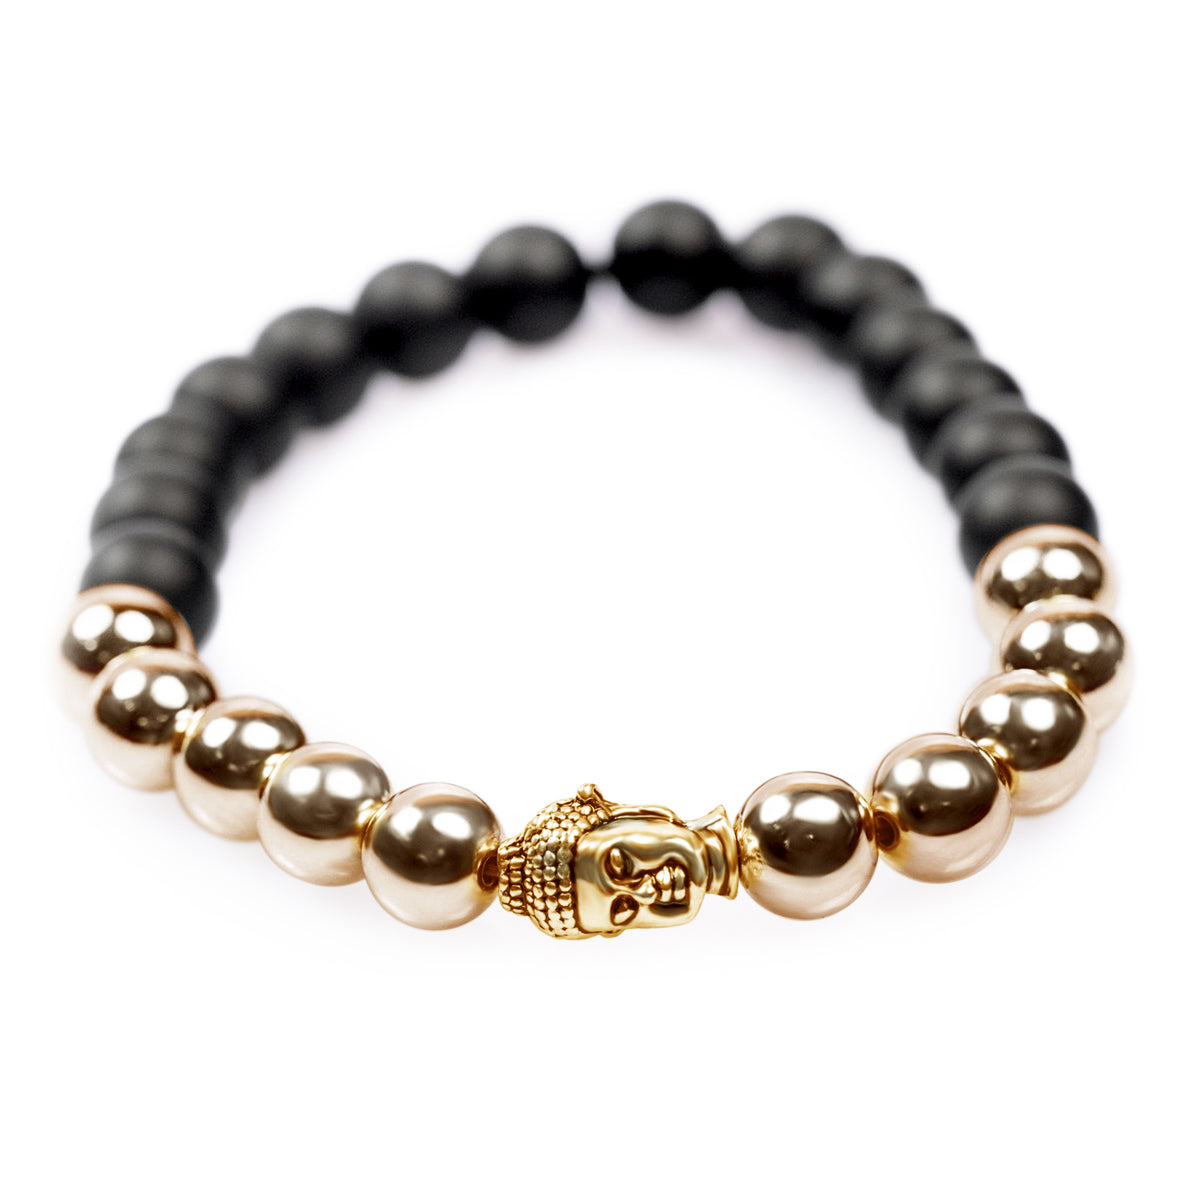 Protecting Black and Gold Buddha Bracelet